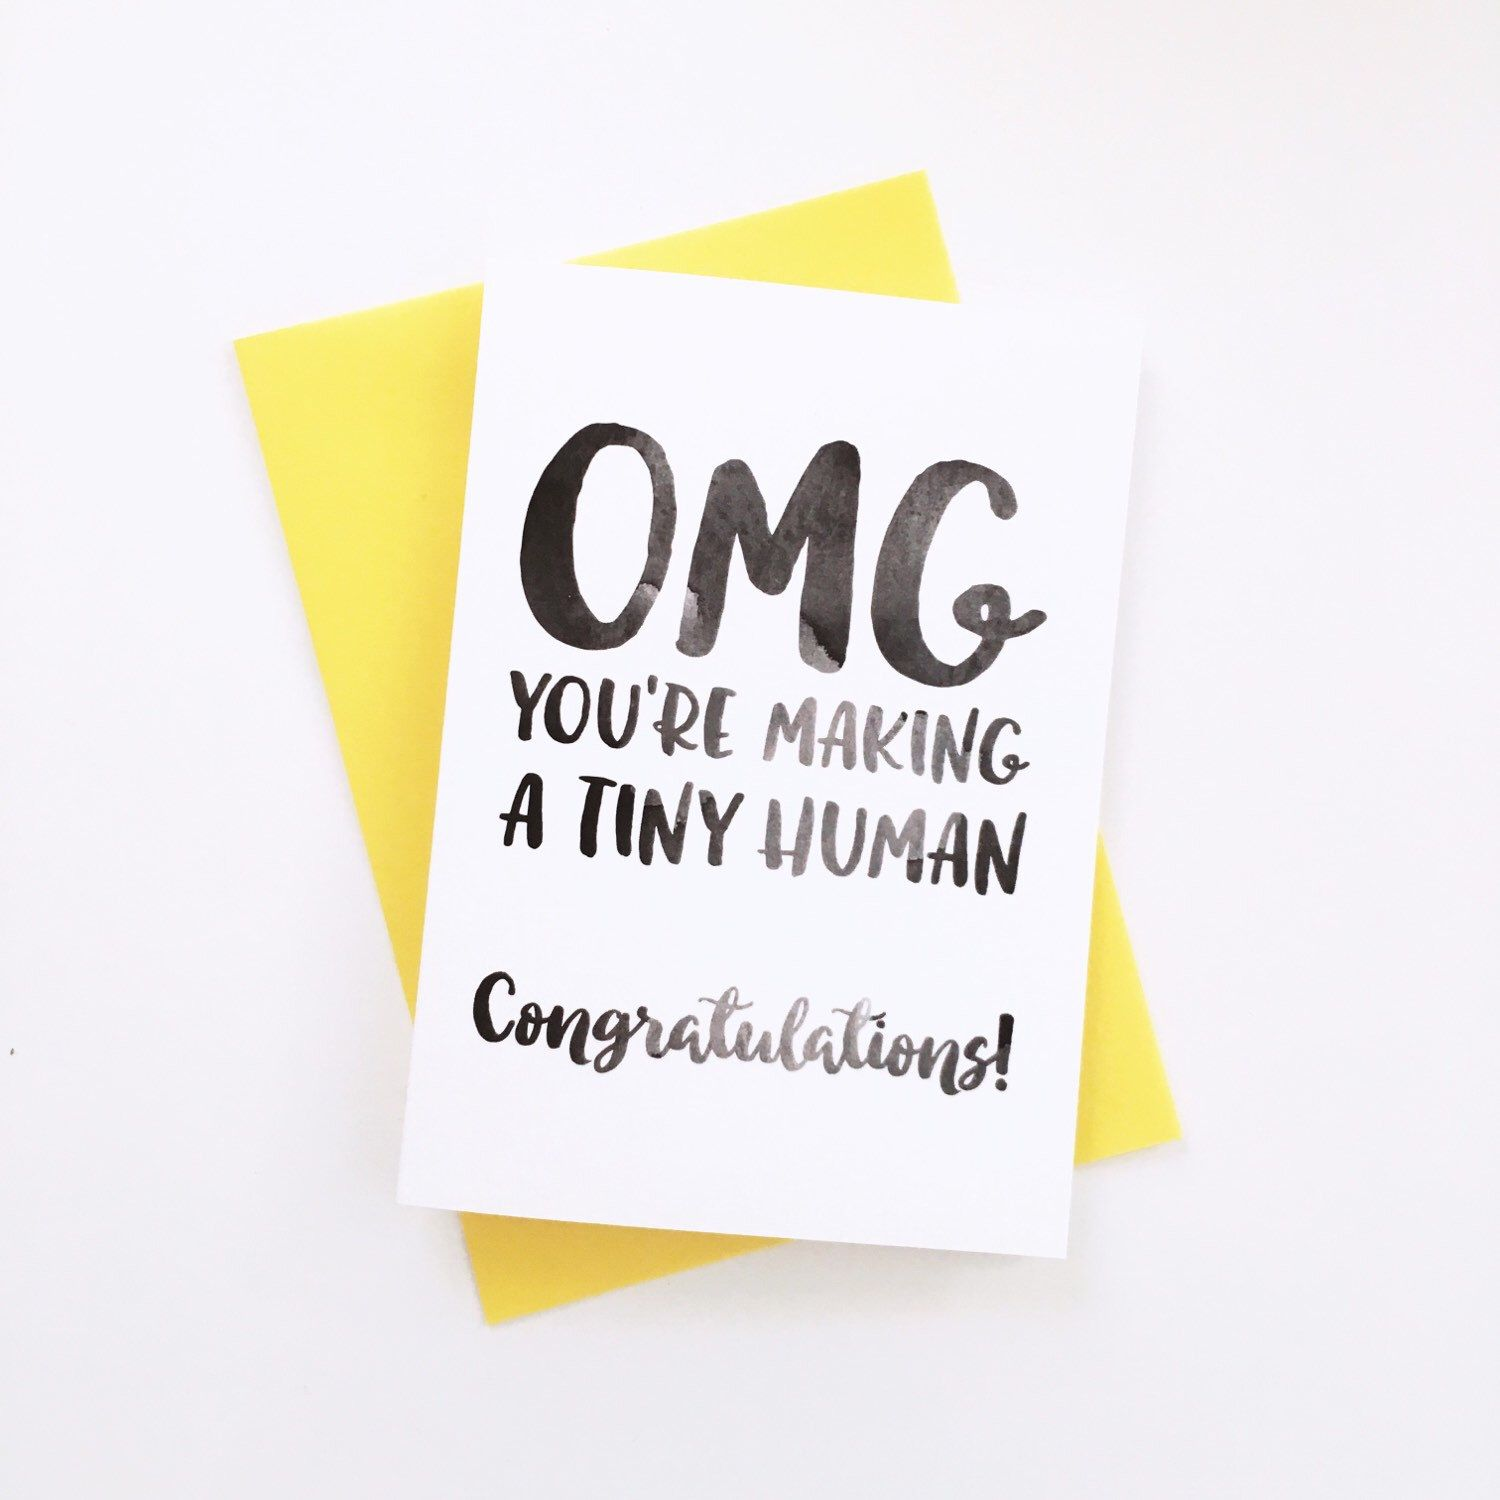 New Baby, Baby Shower, Congratulations Card by HangingWillow on Etsy https://www.etsy.com/listing/185049621/new-baby-baby-shower-congratulations